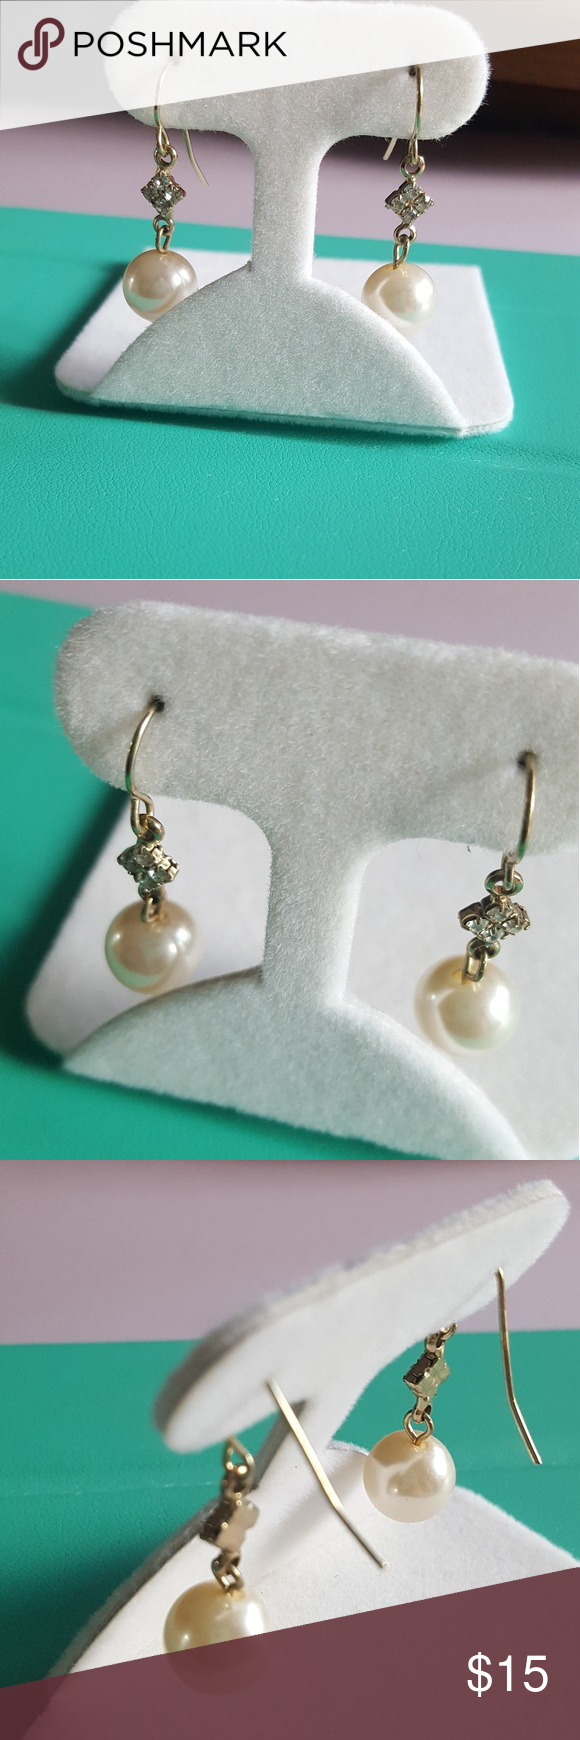 Dangle pearl earrings with cz Gold tone hand made pearl dangle earrings with cubic zirconoas. Ivory colored pearls Jewelry Earrings